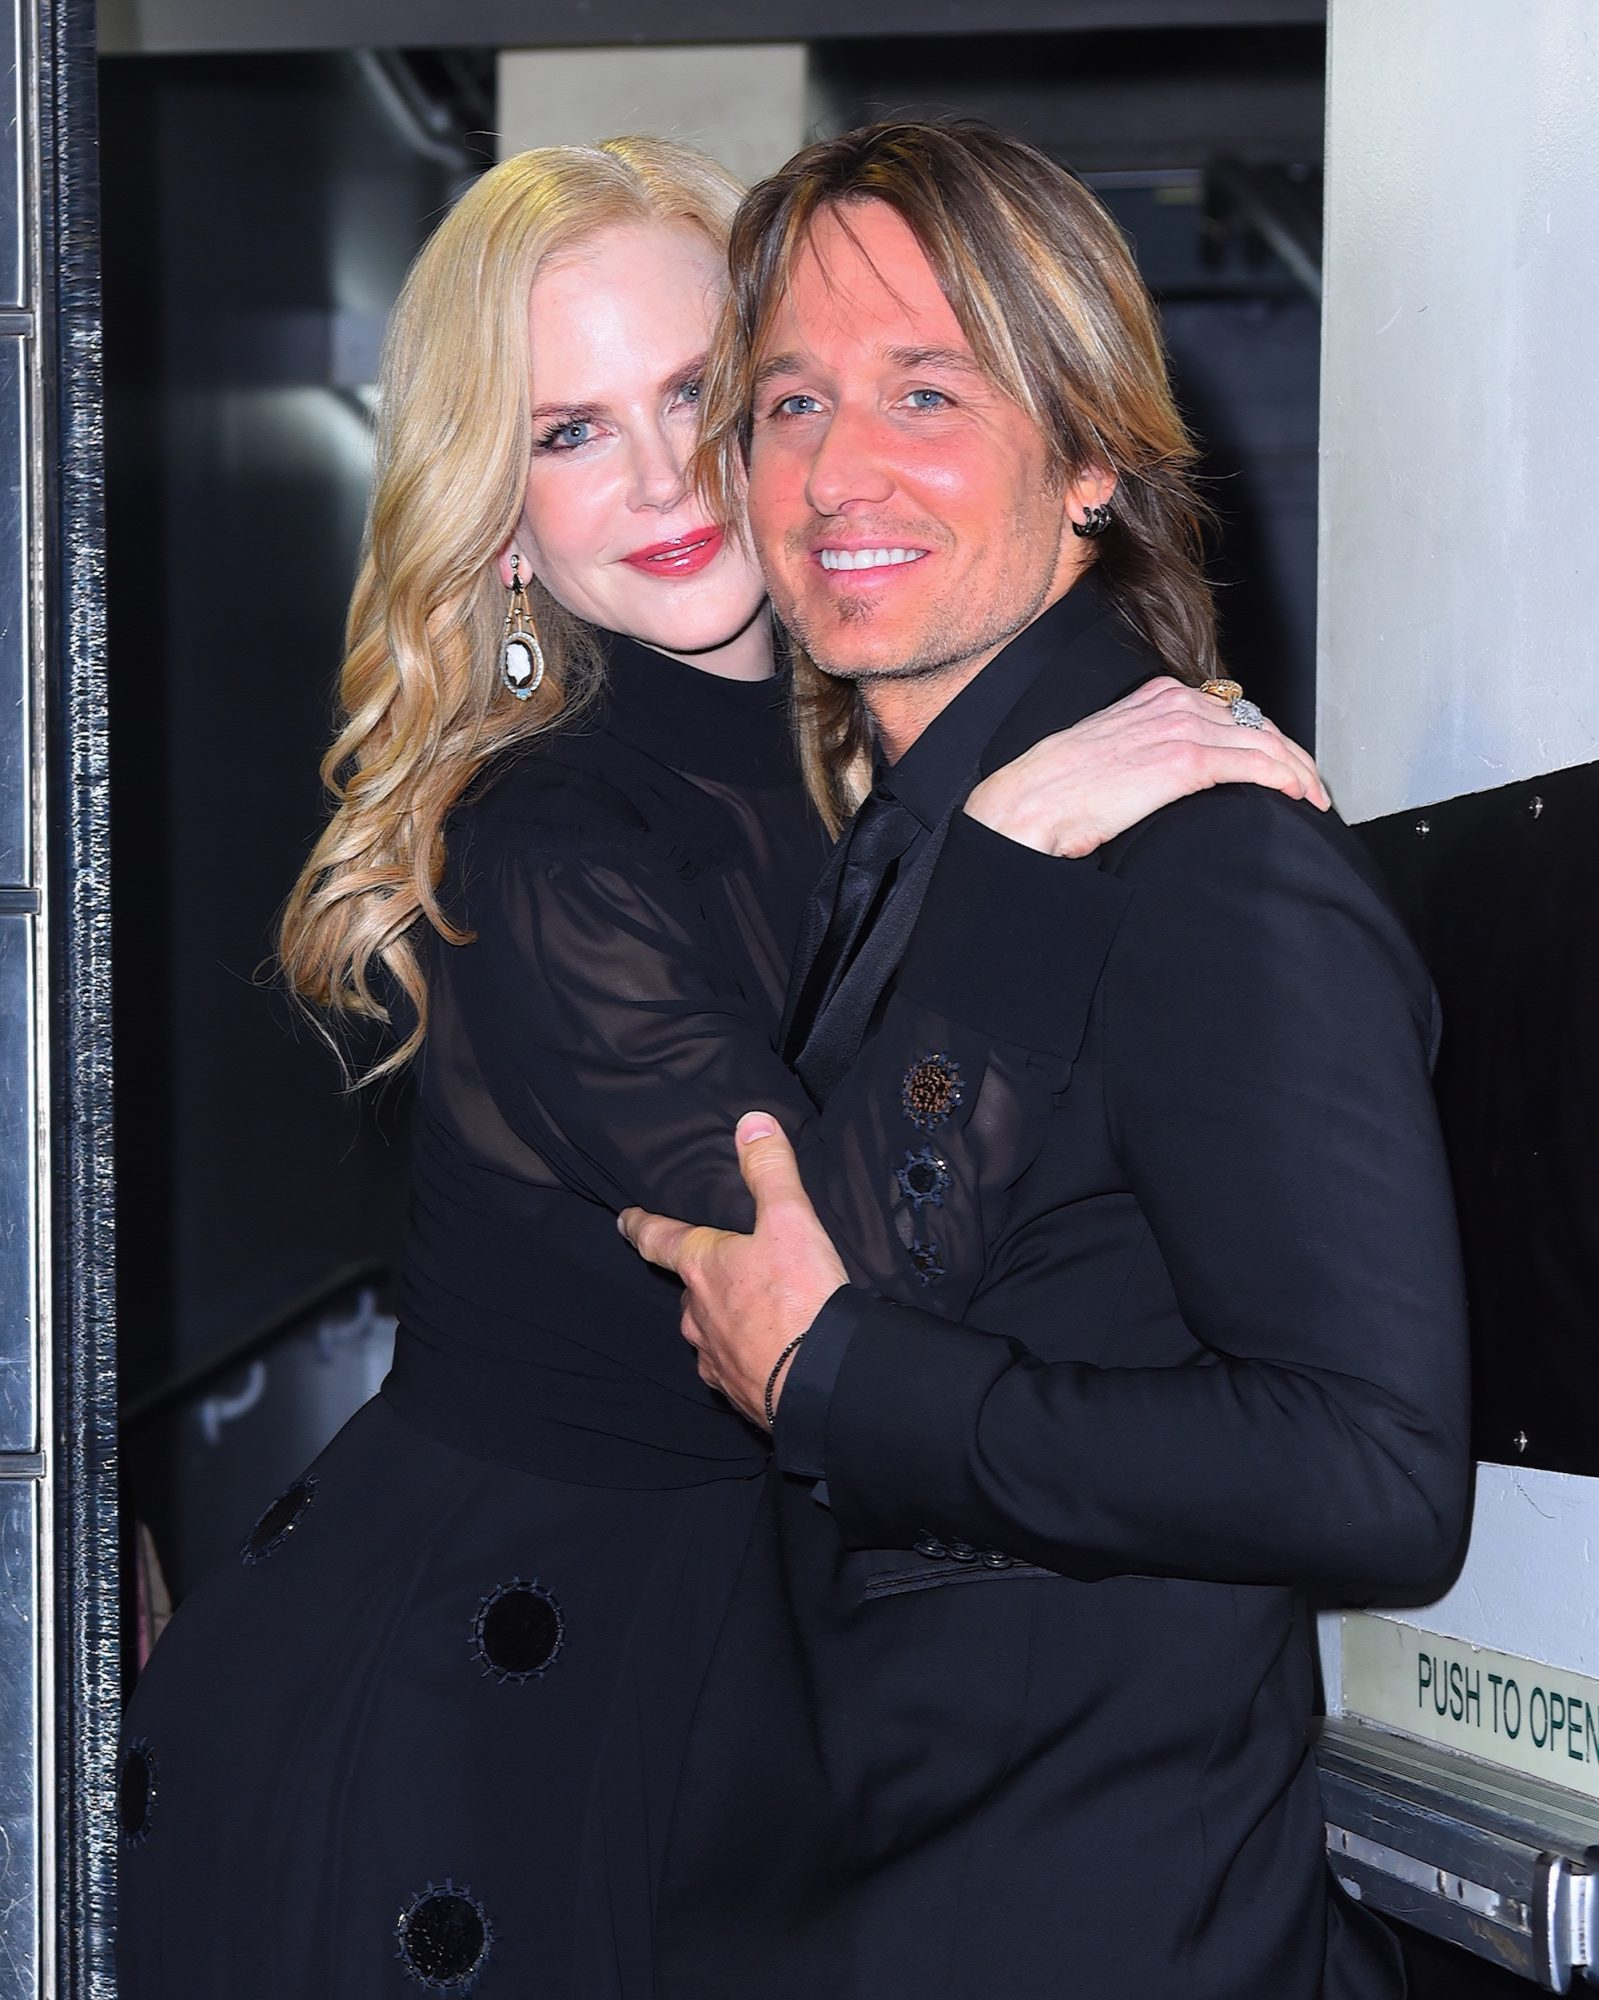 Keith Urban and Nicole Kidman lead